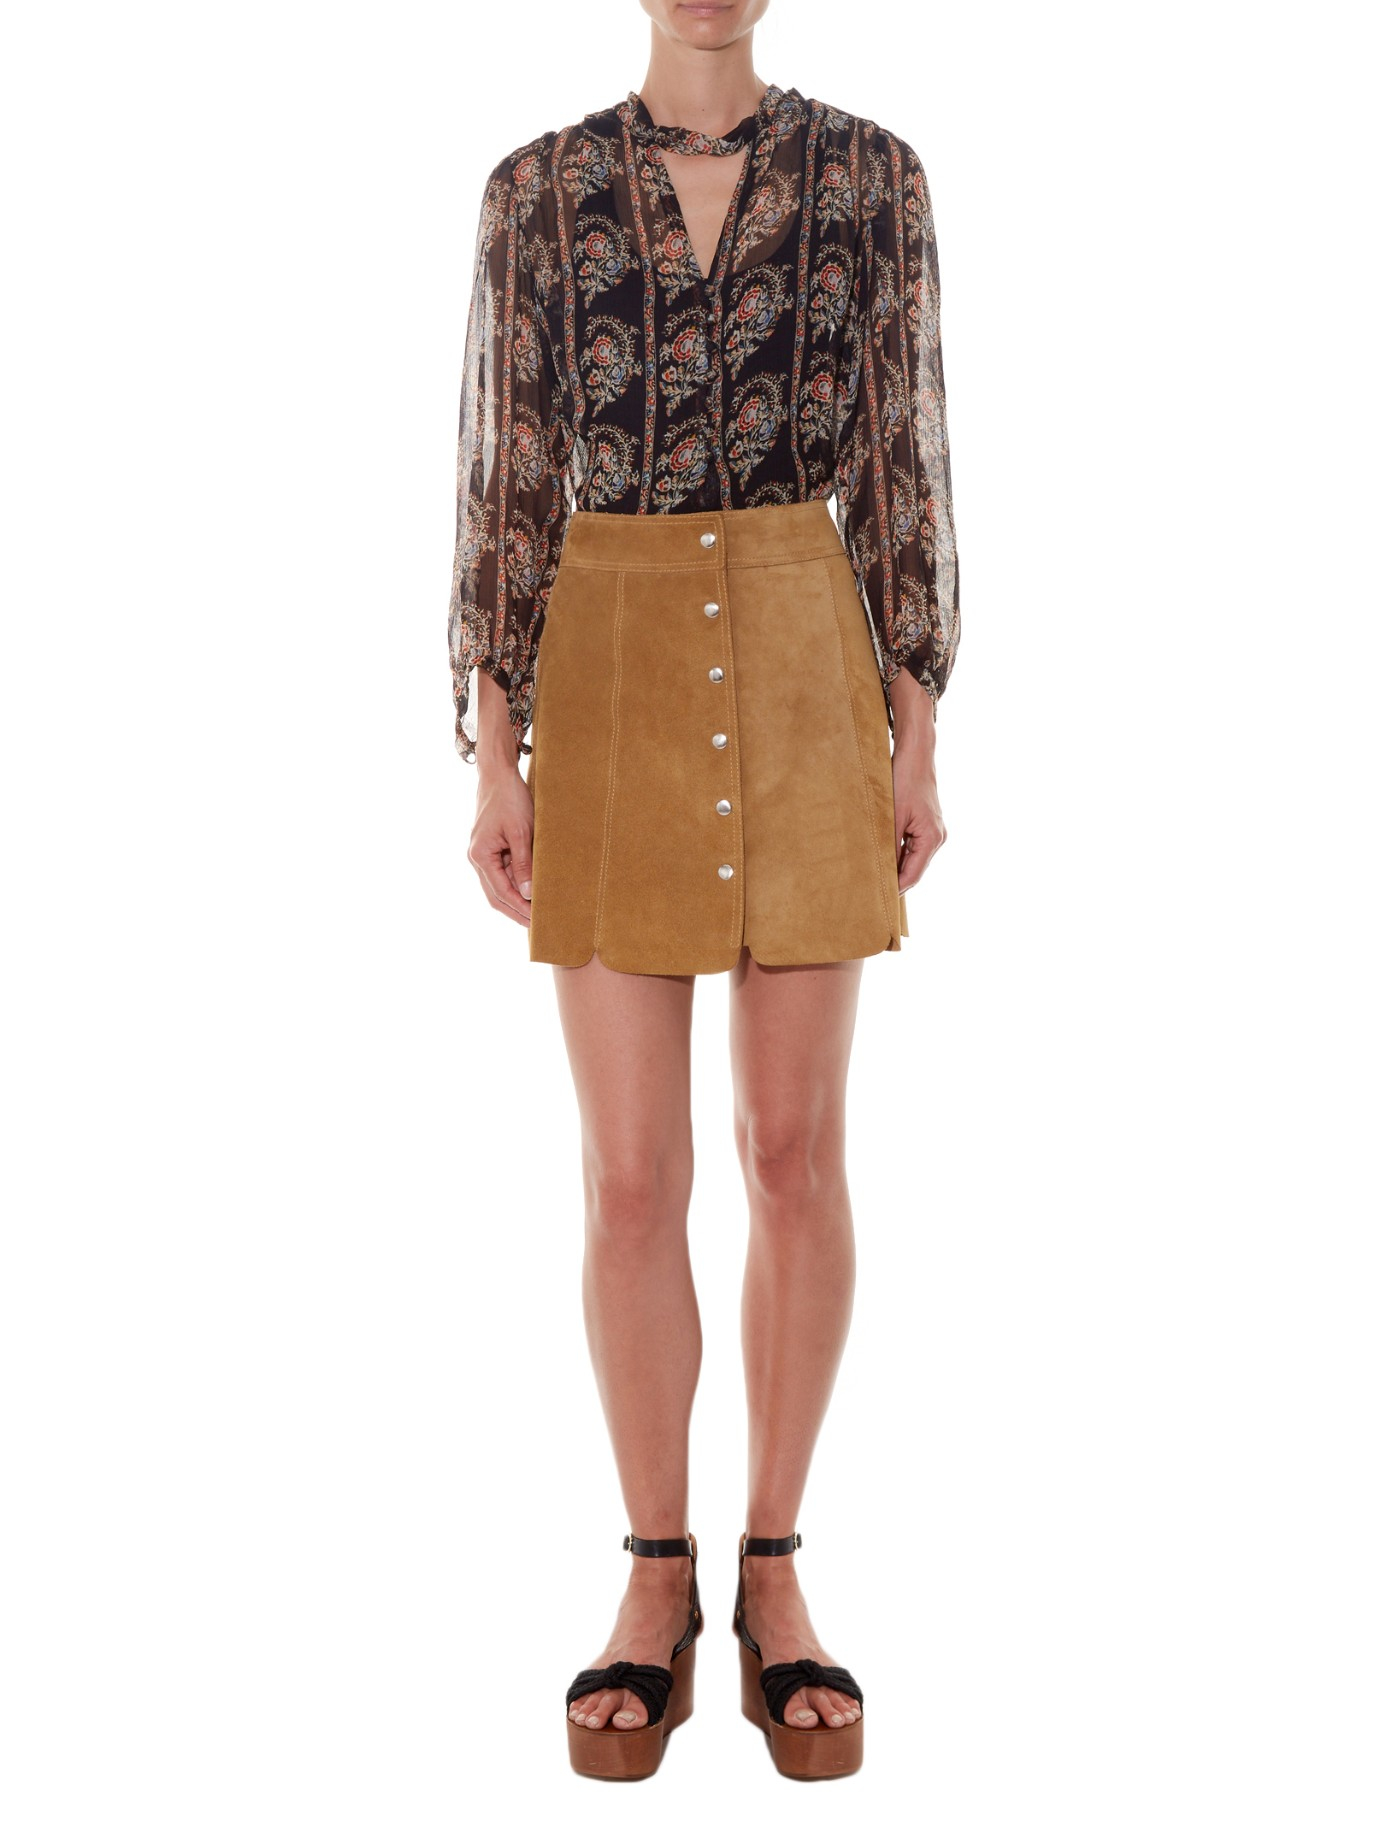 21470529c8 Étoile Isabel Marant Anna Suede Skirt in Natural - Lyst